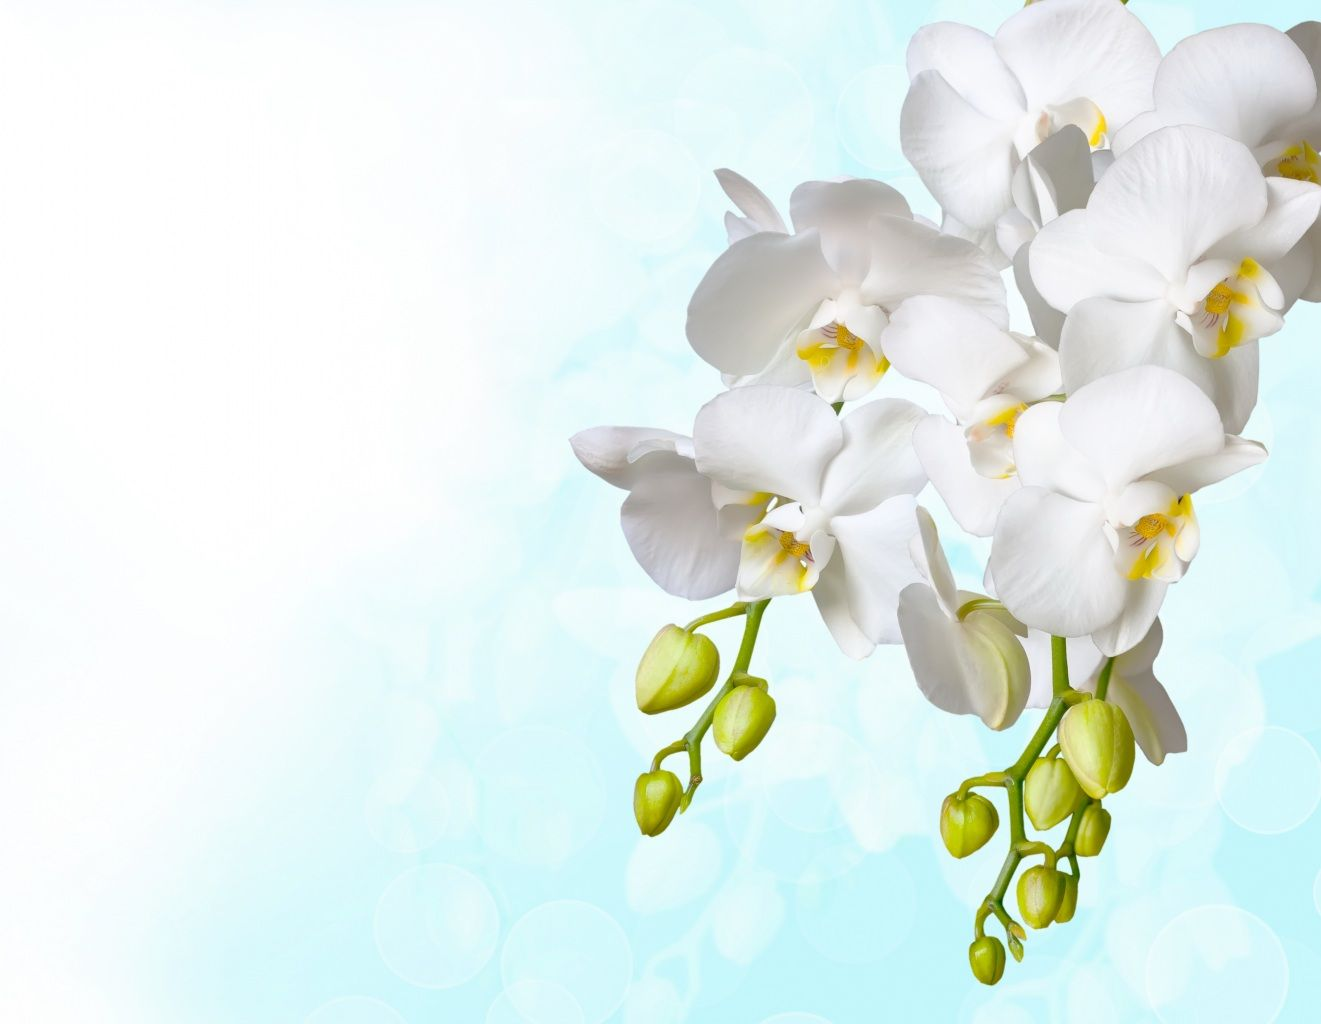 Wallpapers Orchid White Flower Bud Flowers Image 373042 Download Orchid Flower Flower Images Flower Bud